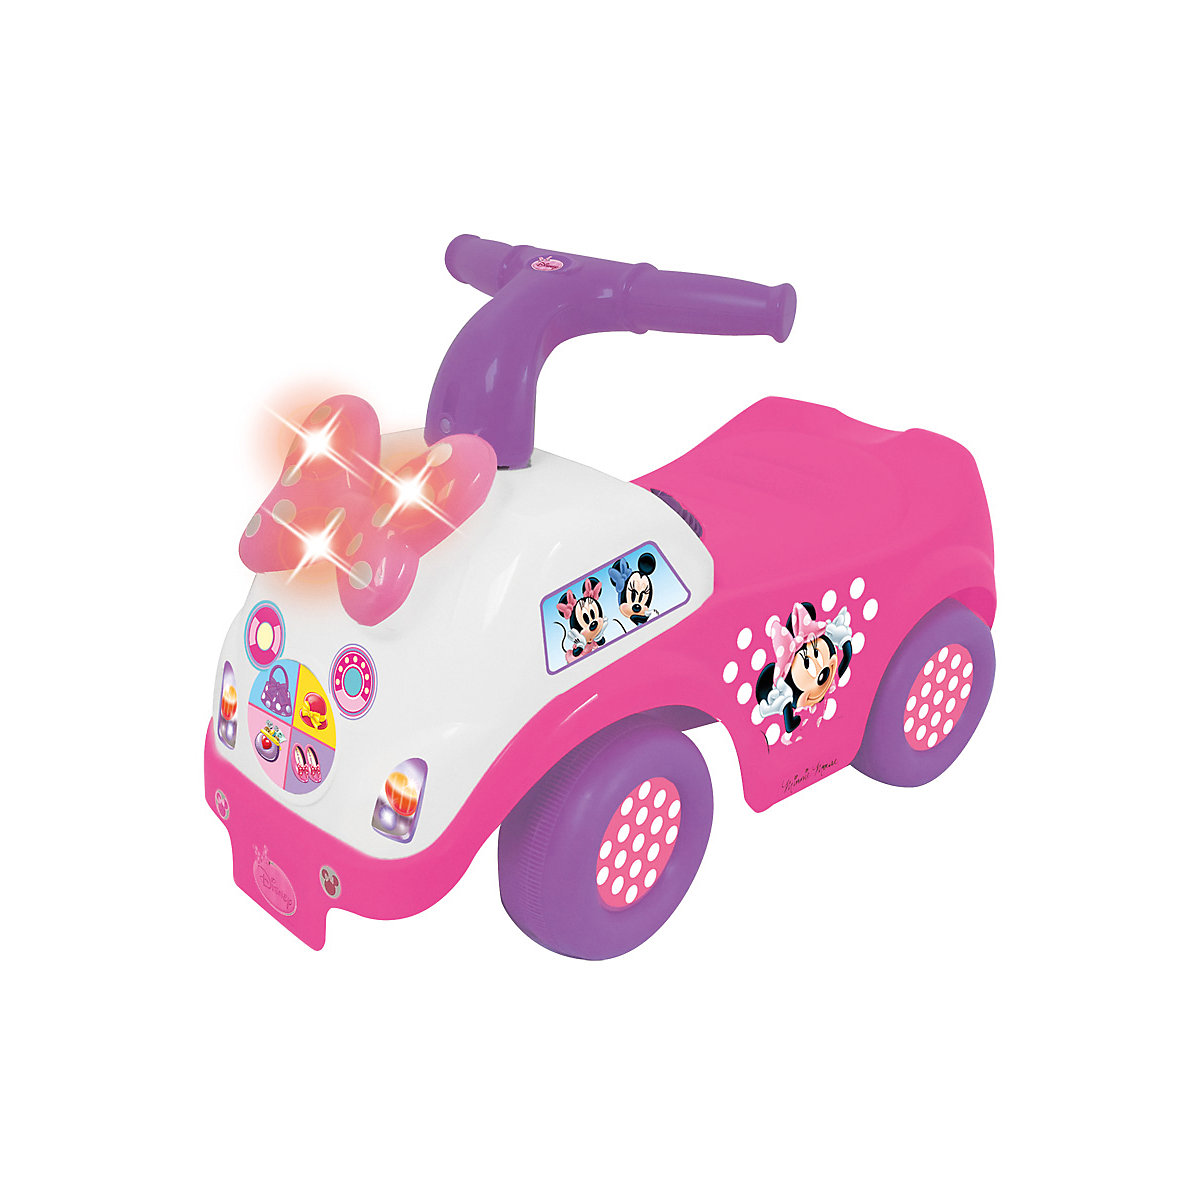 KIDDIELAND Ride On Cars 9508120 Children electric car Outdoor Fun Sports Ride On Toys walker toy game Kids peppa s car ride